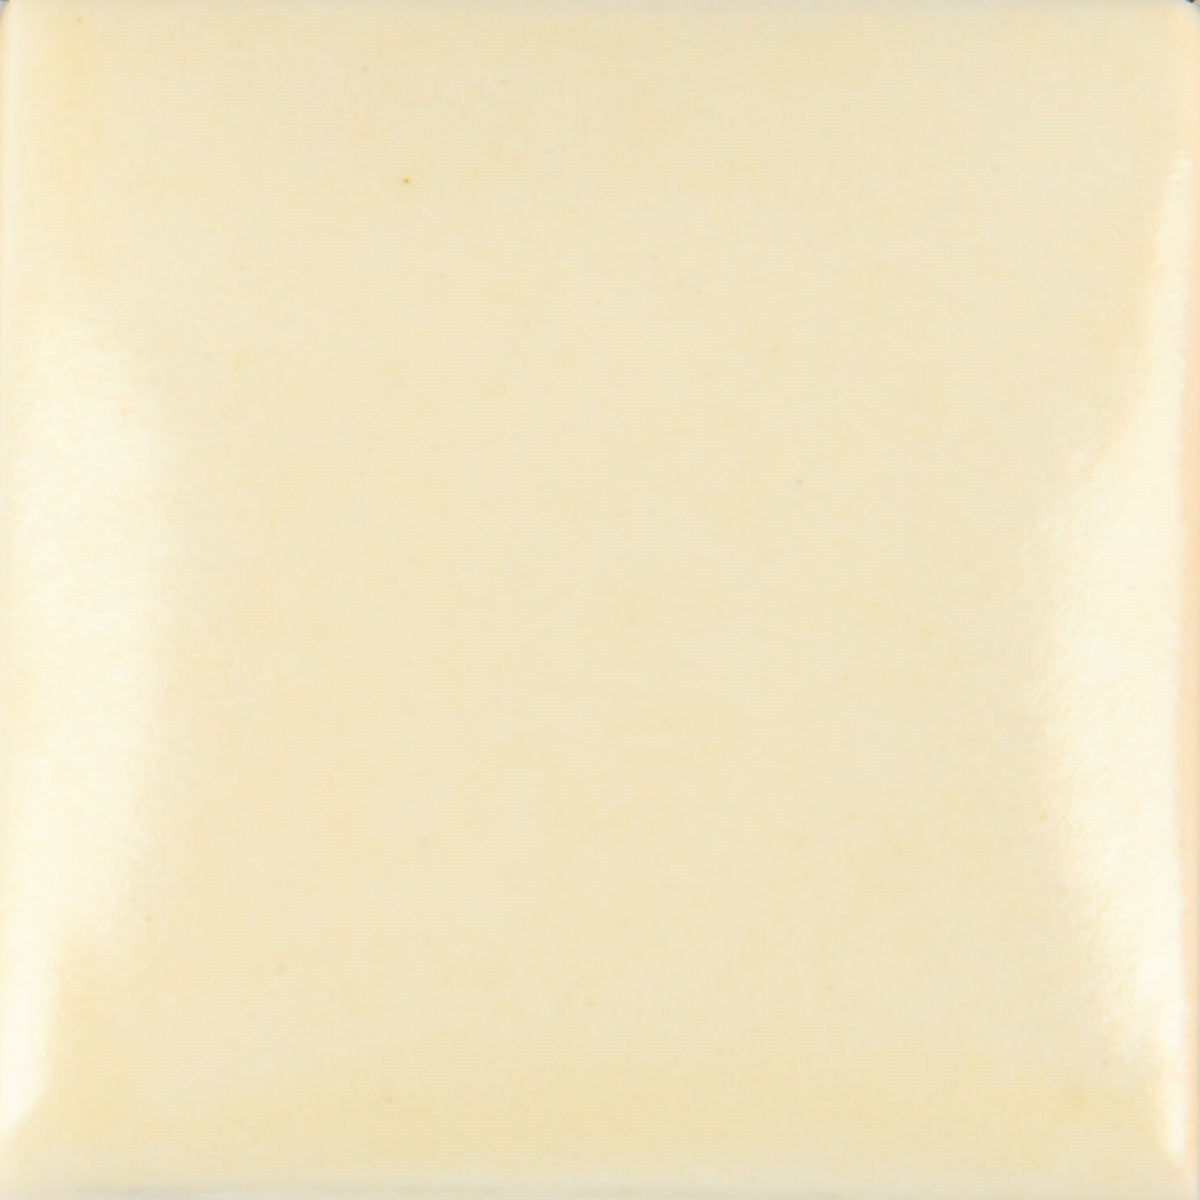 Duncan SN367 Banana Cream Satin Glaze